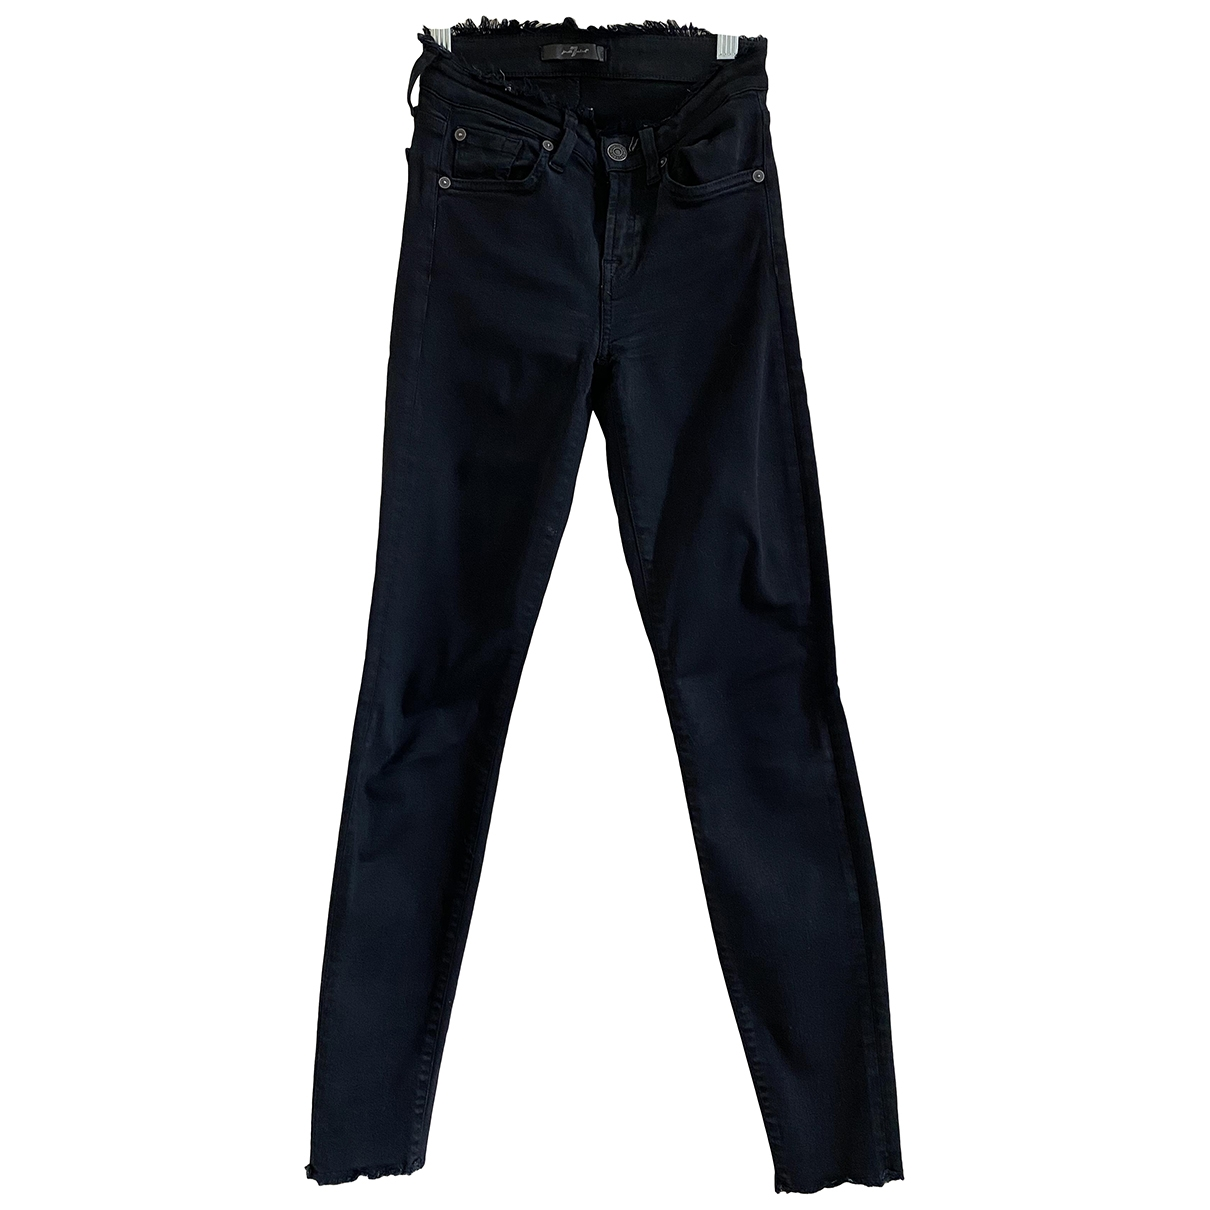 7 For All Mankind \N Black Cotton - elasthane Jeans for Women 22 US